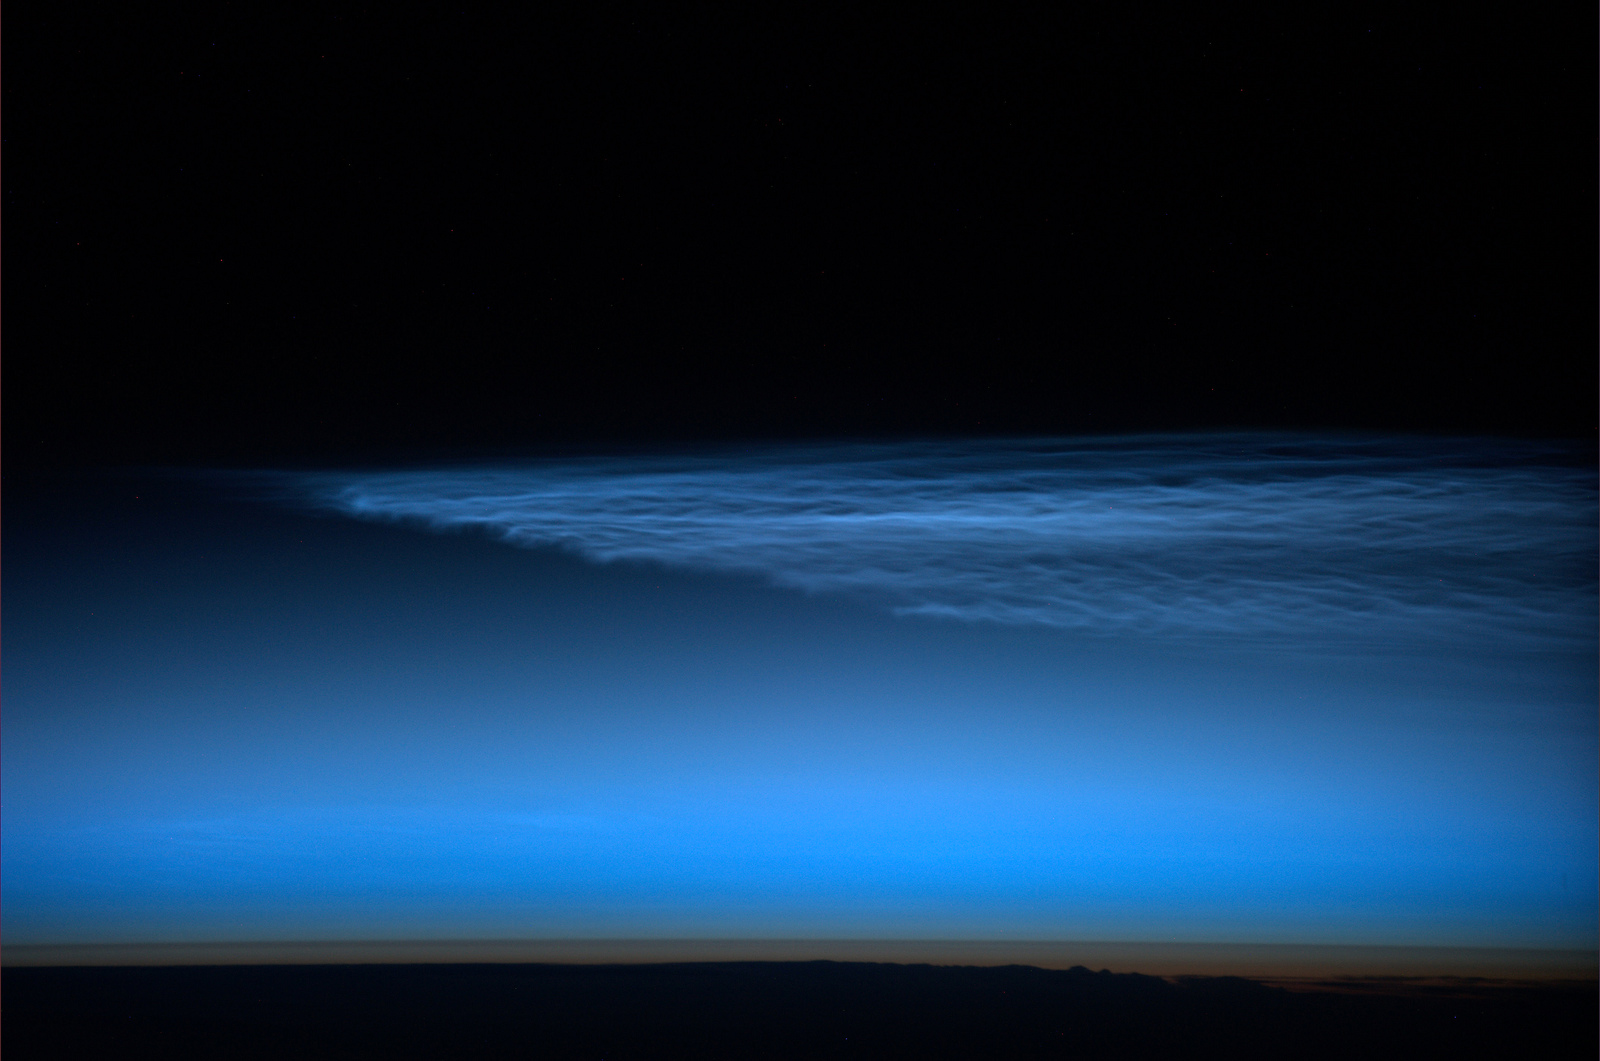 Unexpected noctilucent clouds.